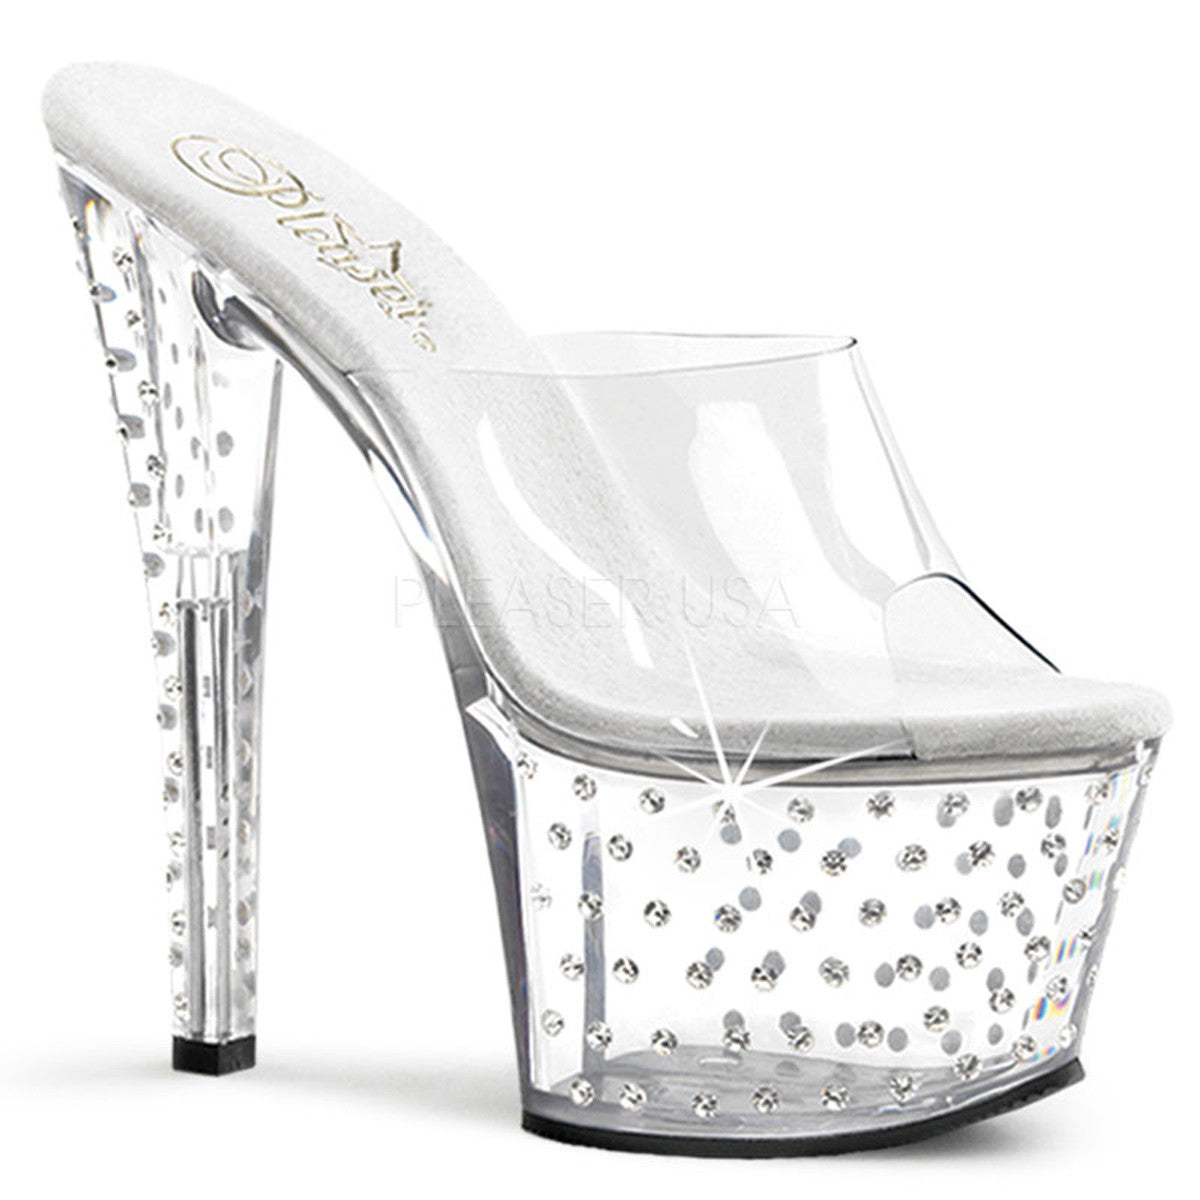 PLEASER STARDUST-701 Clear Platform Slides - Shoecup.com